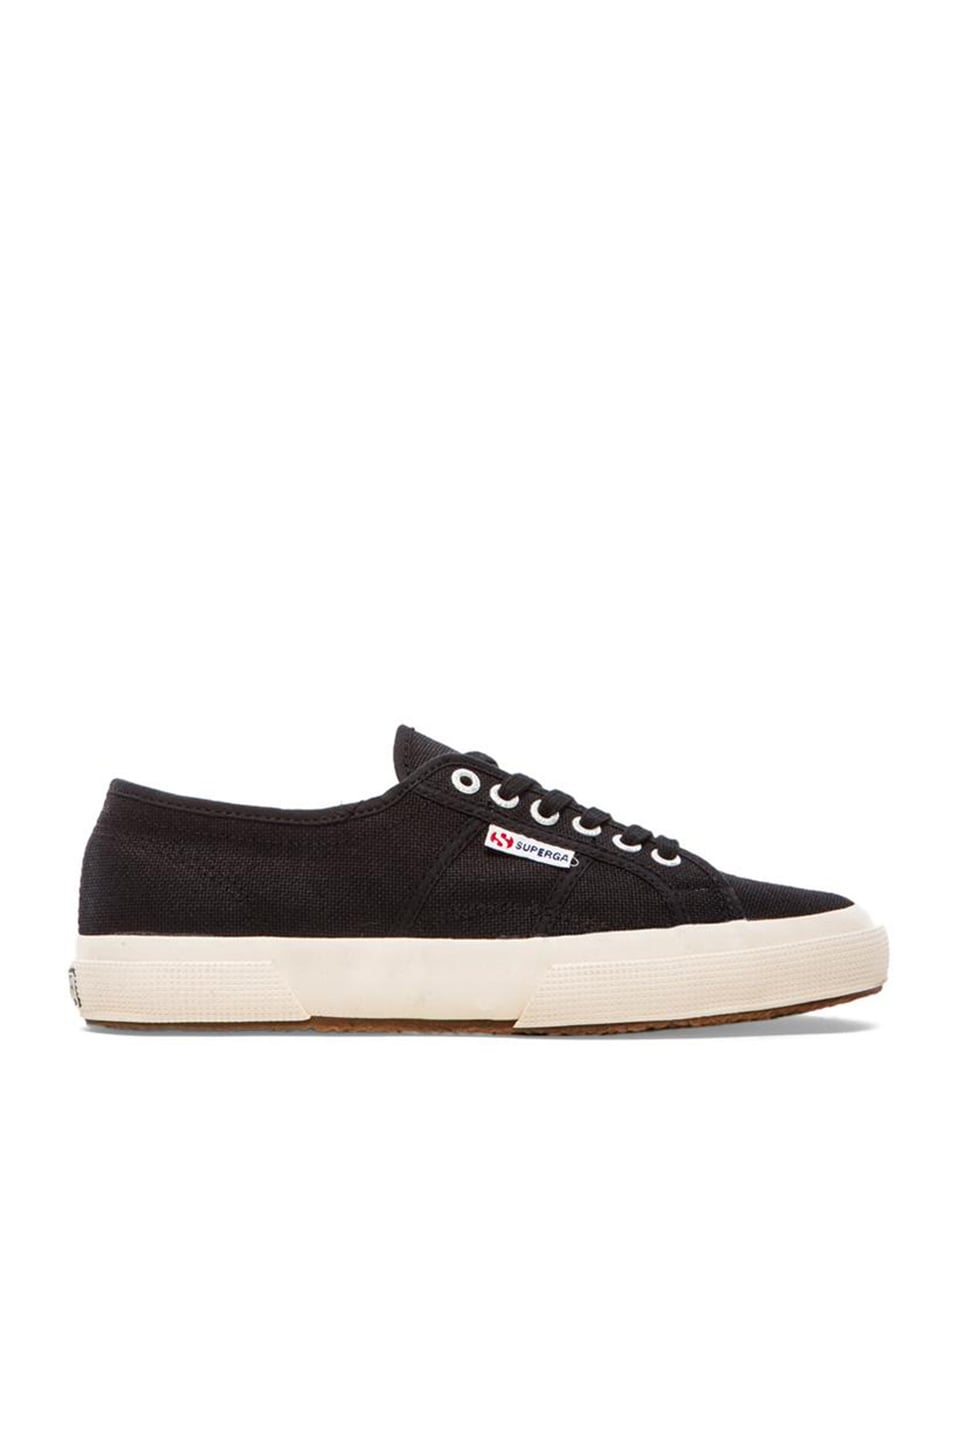 Superga 2750 Cotu Classic in Black